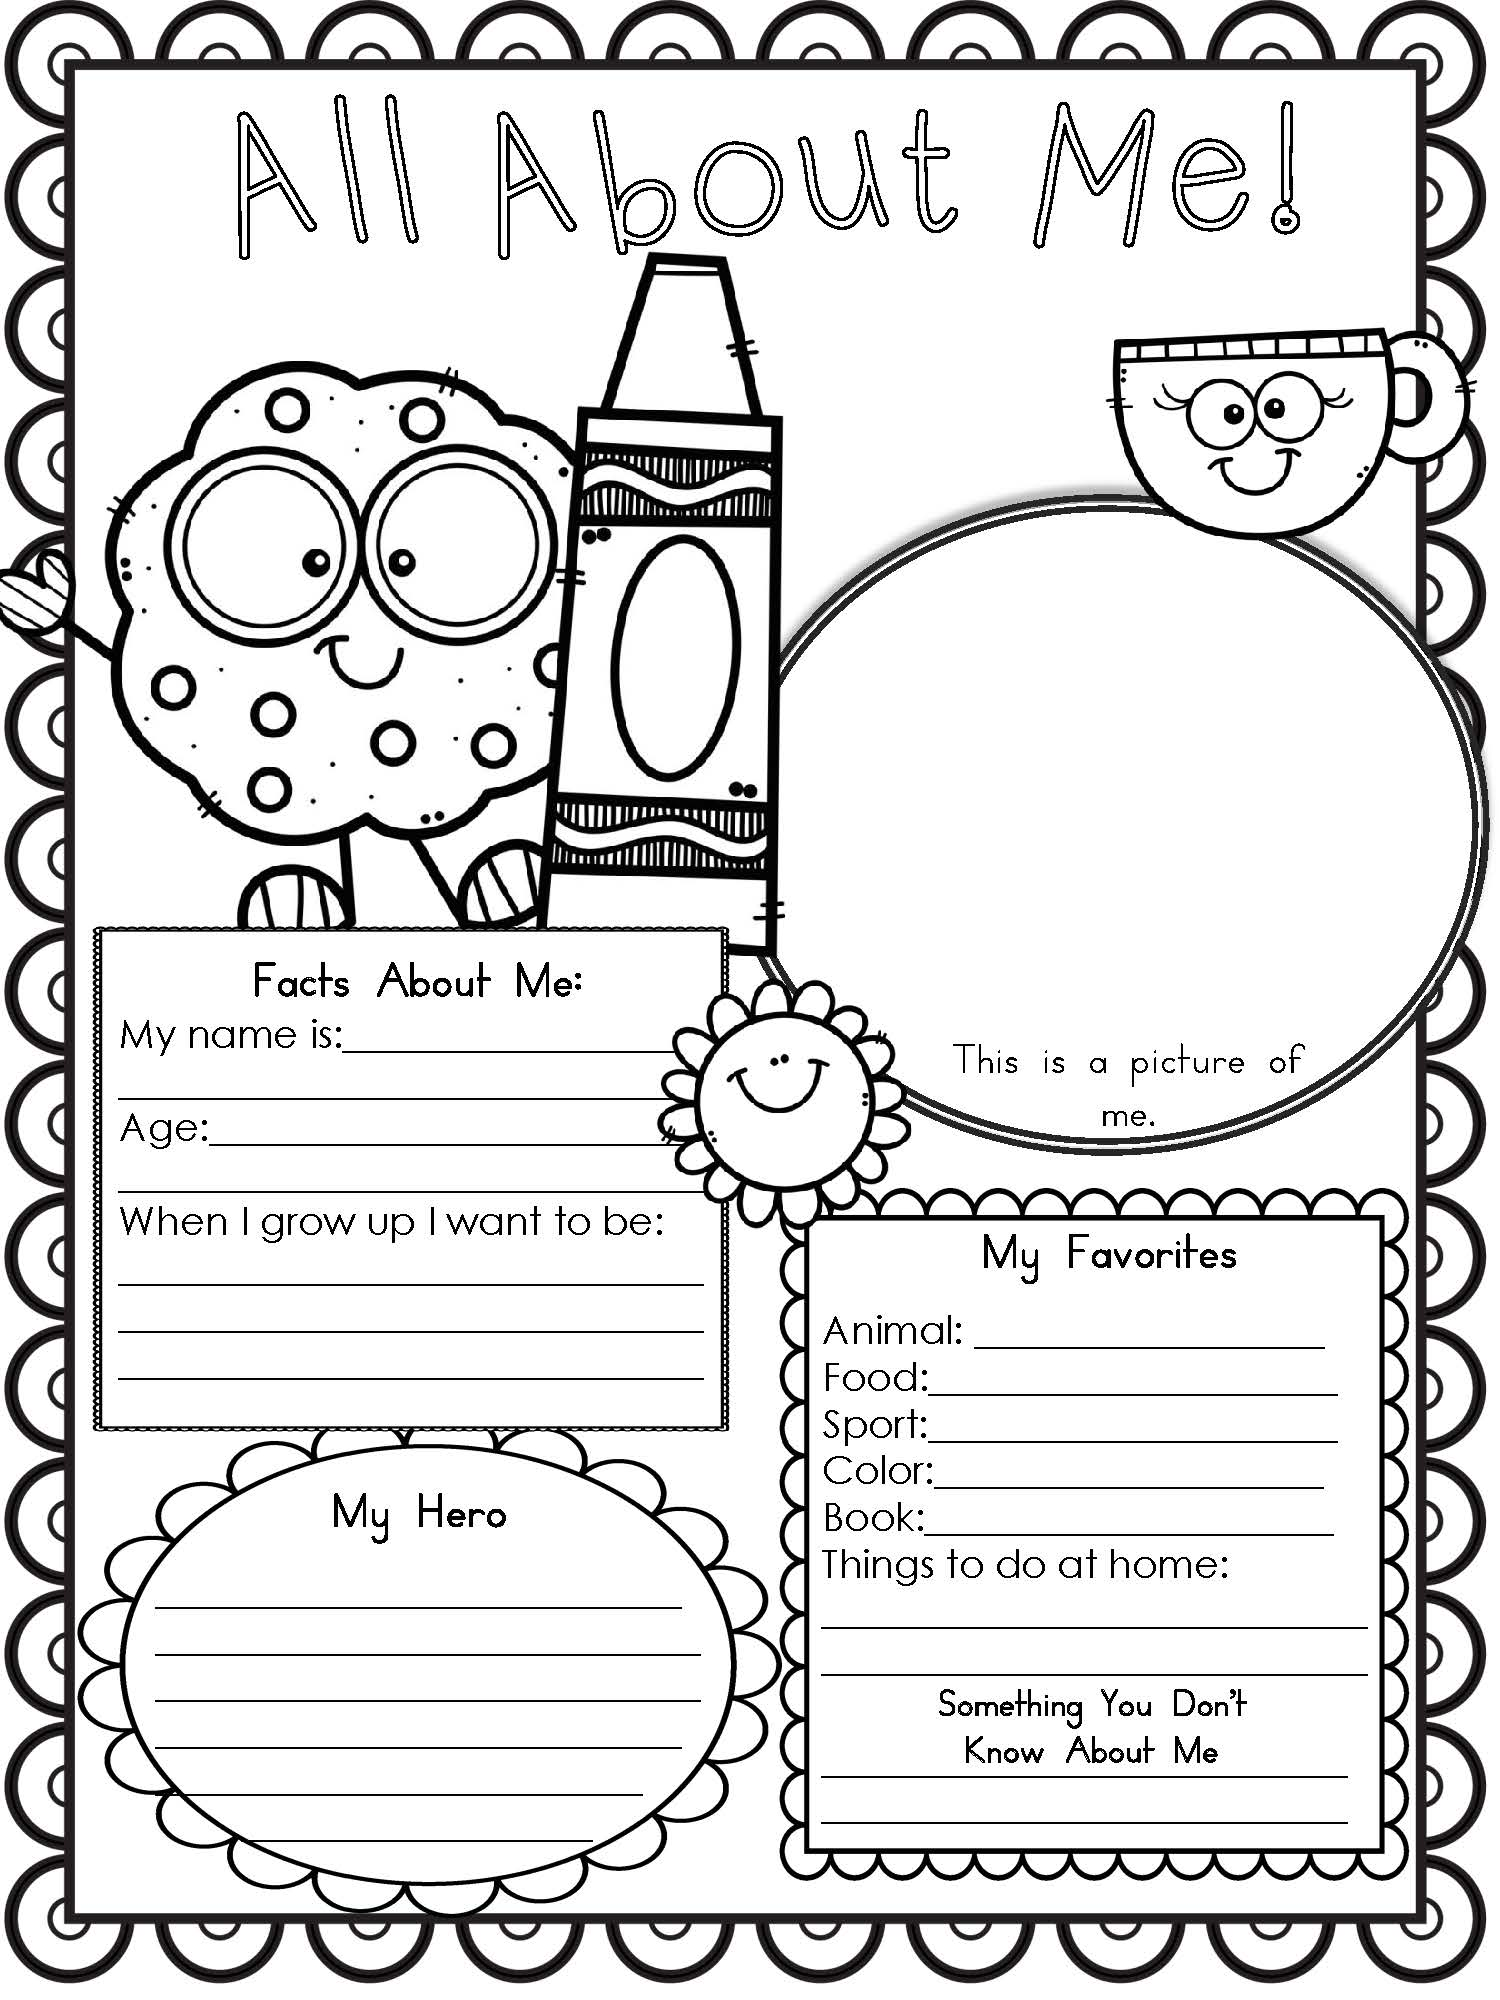 About Me Worksheets  293668